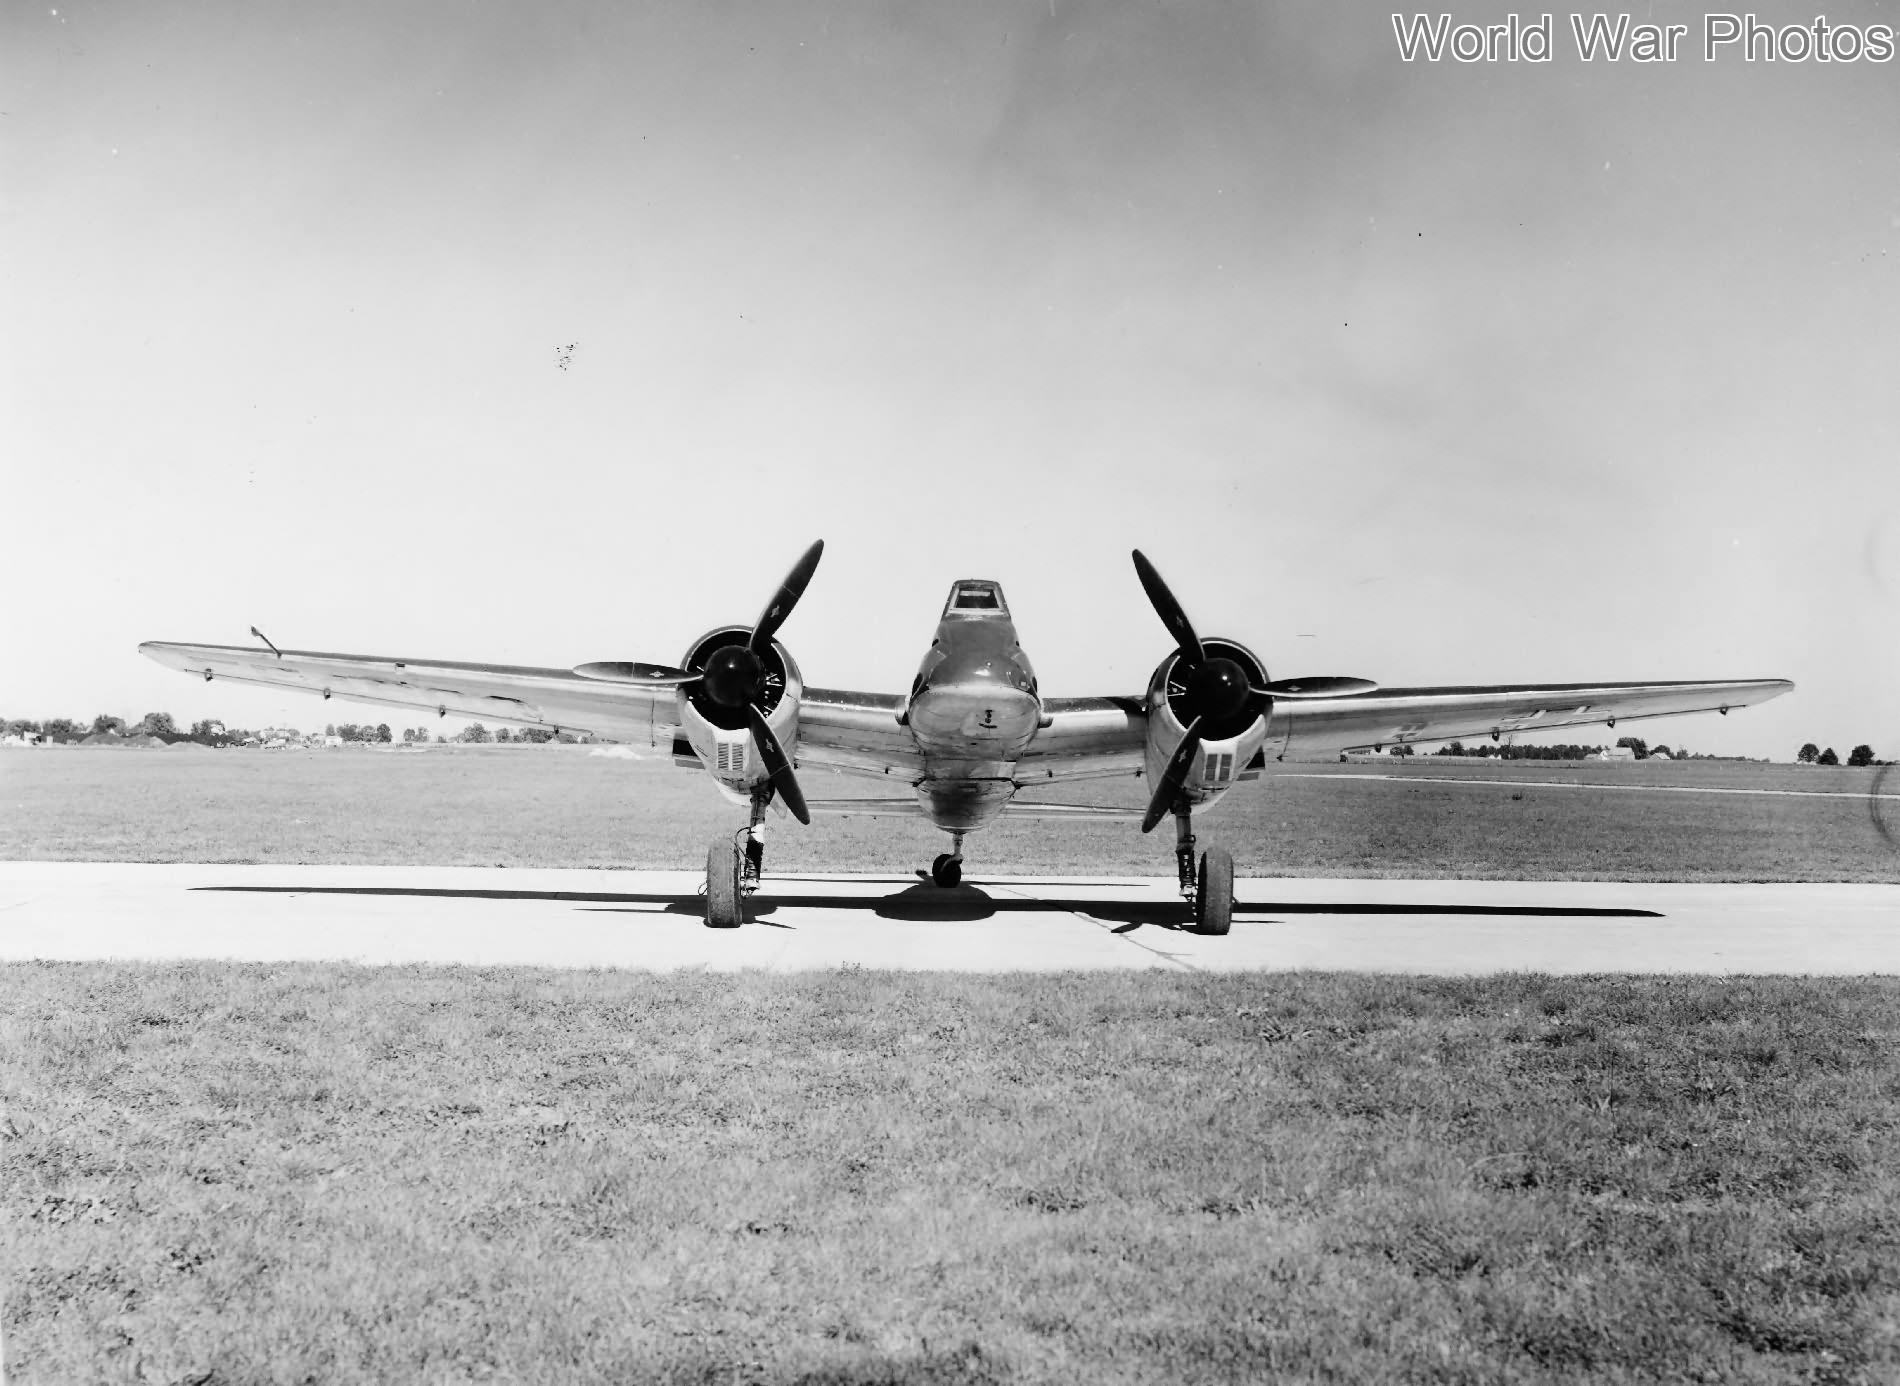 Captured Hs 129 B-2 at Freeman Army Airfield, Indiana, 1946